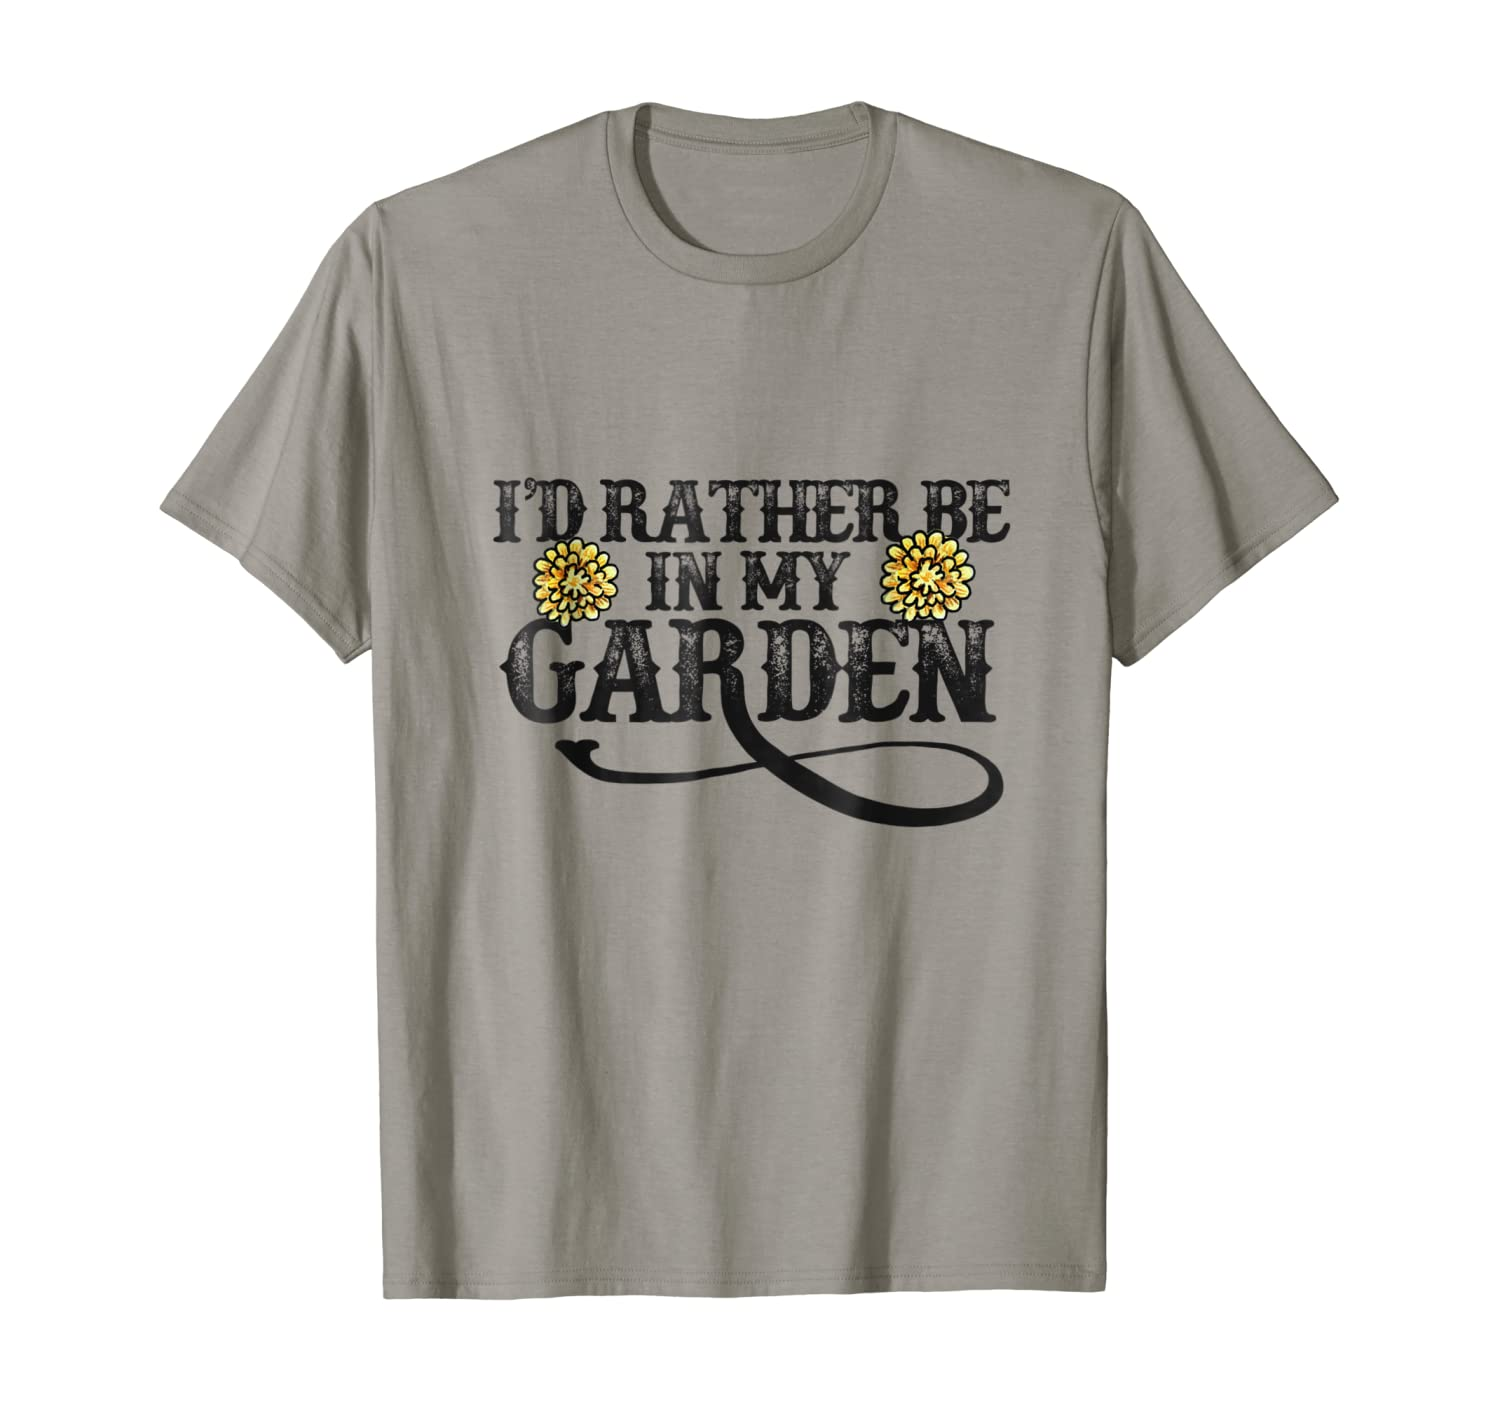 I'd rather be in my garden shirt gardening tee shirts